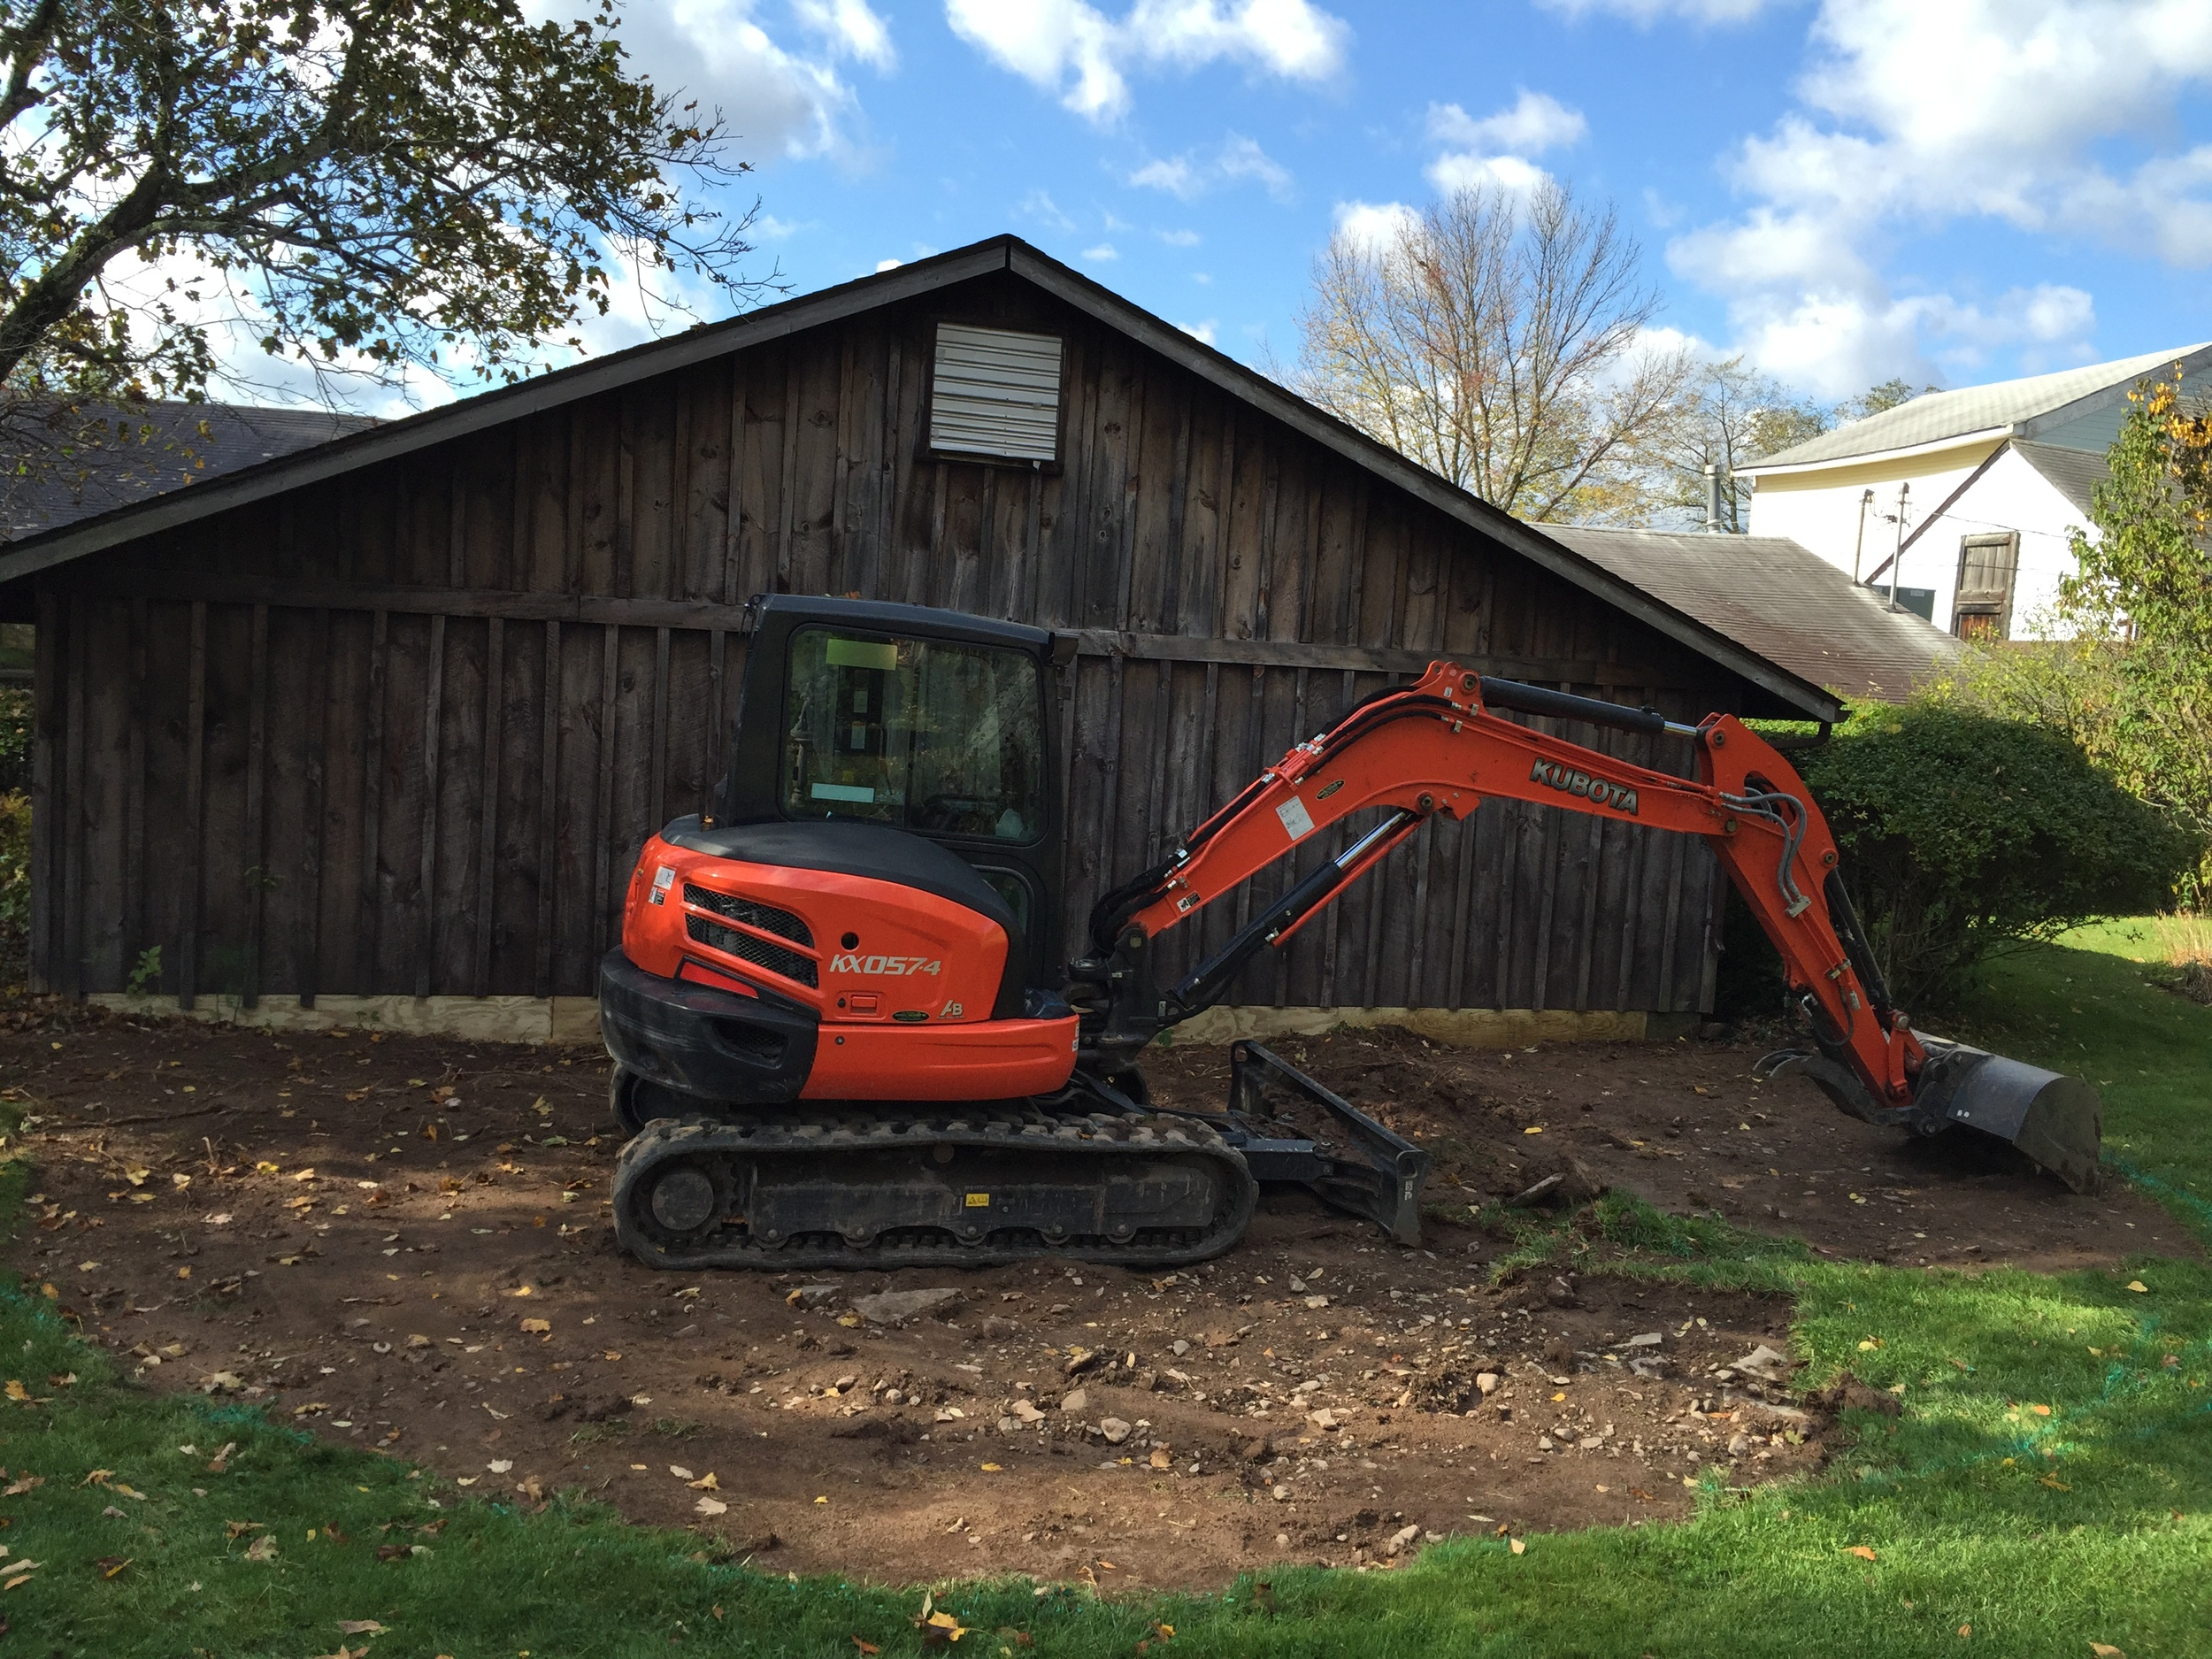 Our new patio is going to be wonderful!